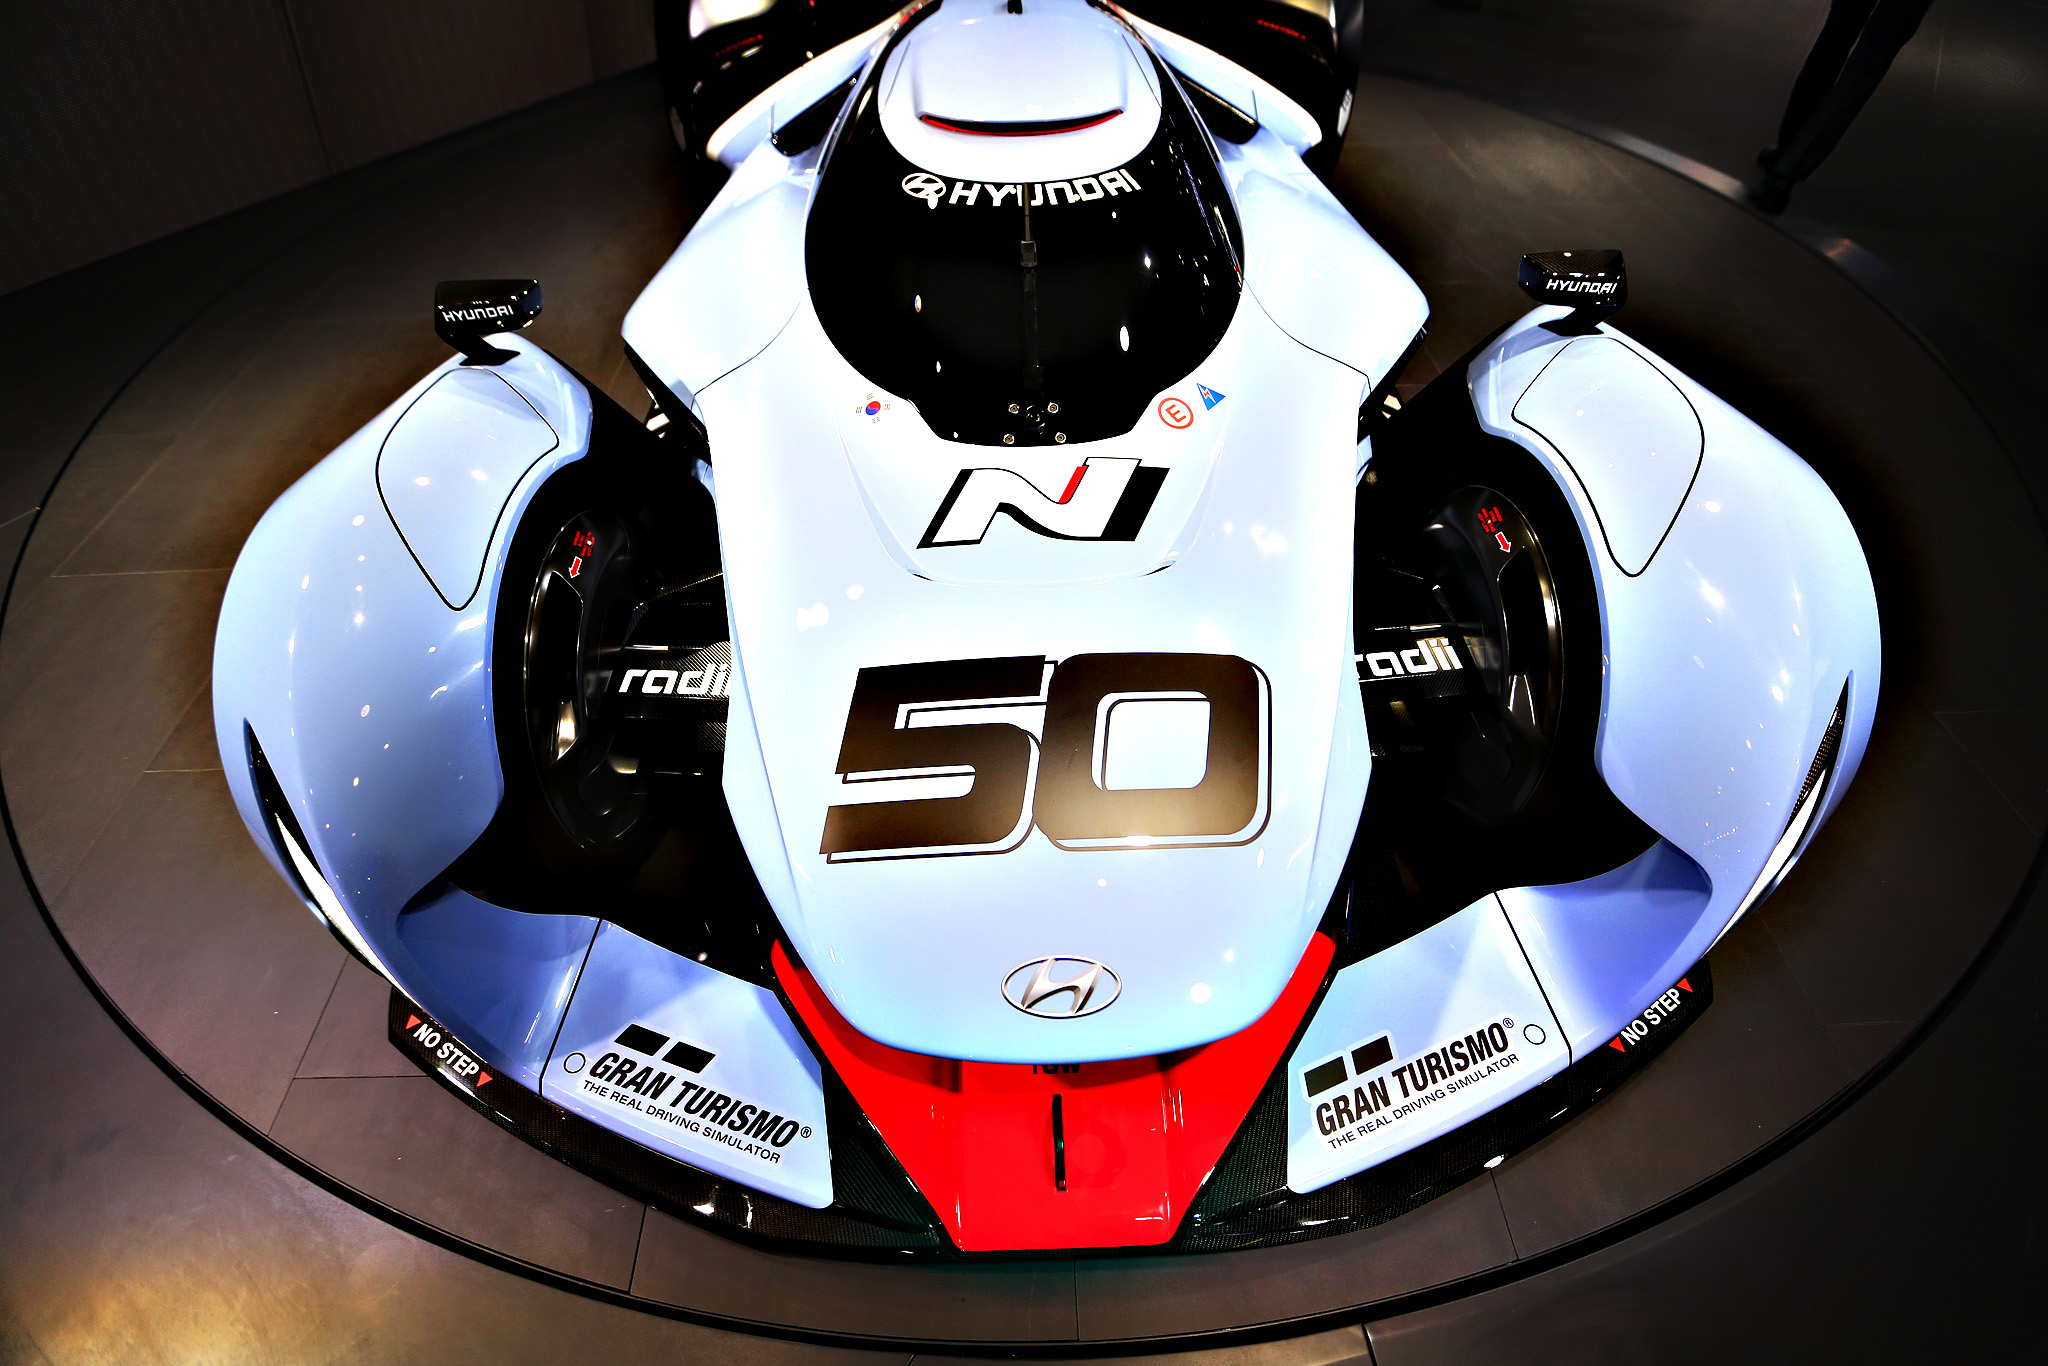 A Hyundai N 50 Gran Turismo concept automobile, produced by Hyundai Motor Co., sits on display at the IAA Frankfurt Motor Show in Frankfurt, Germany, on Tuesday, Sept. 15, 2015. The Frankfurt International Motor Show starts on Thursday, and nearly one million visitors are expected to view the latest must-have vehicles and motoring technology from over 1,000 exhibitors in a space equivalent to 33 soccer fields